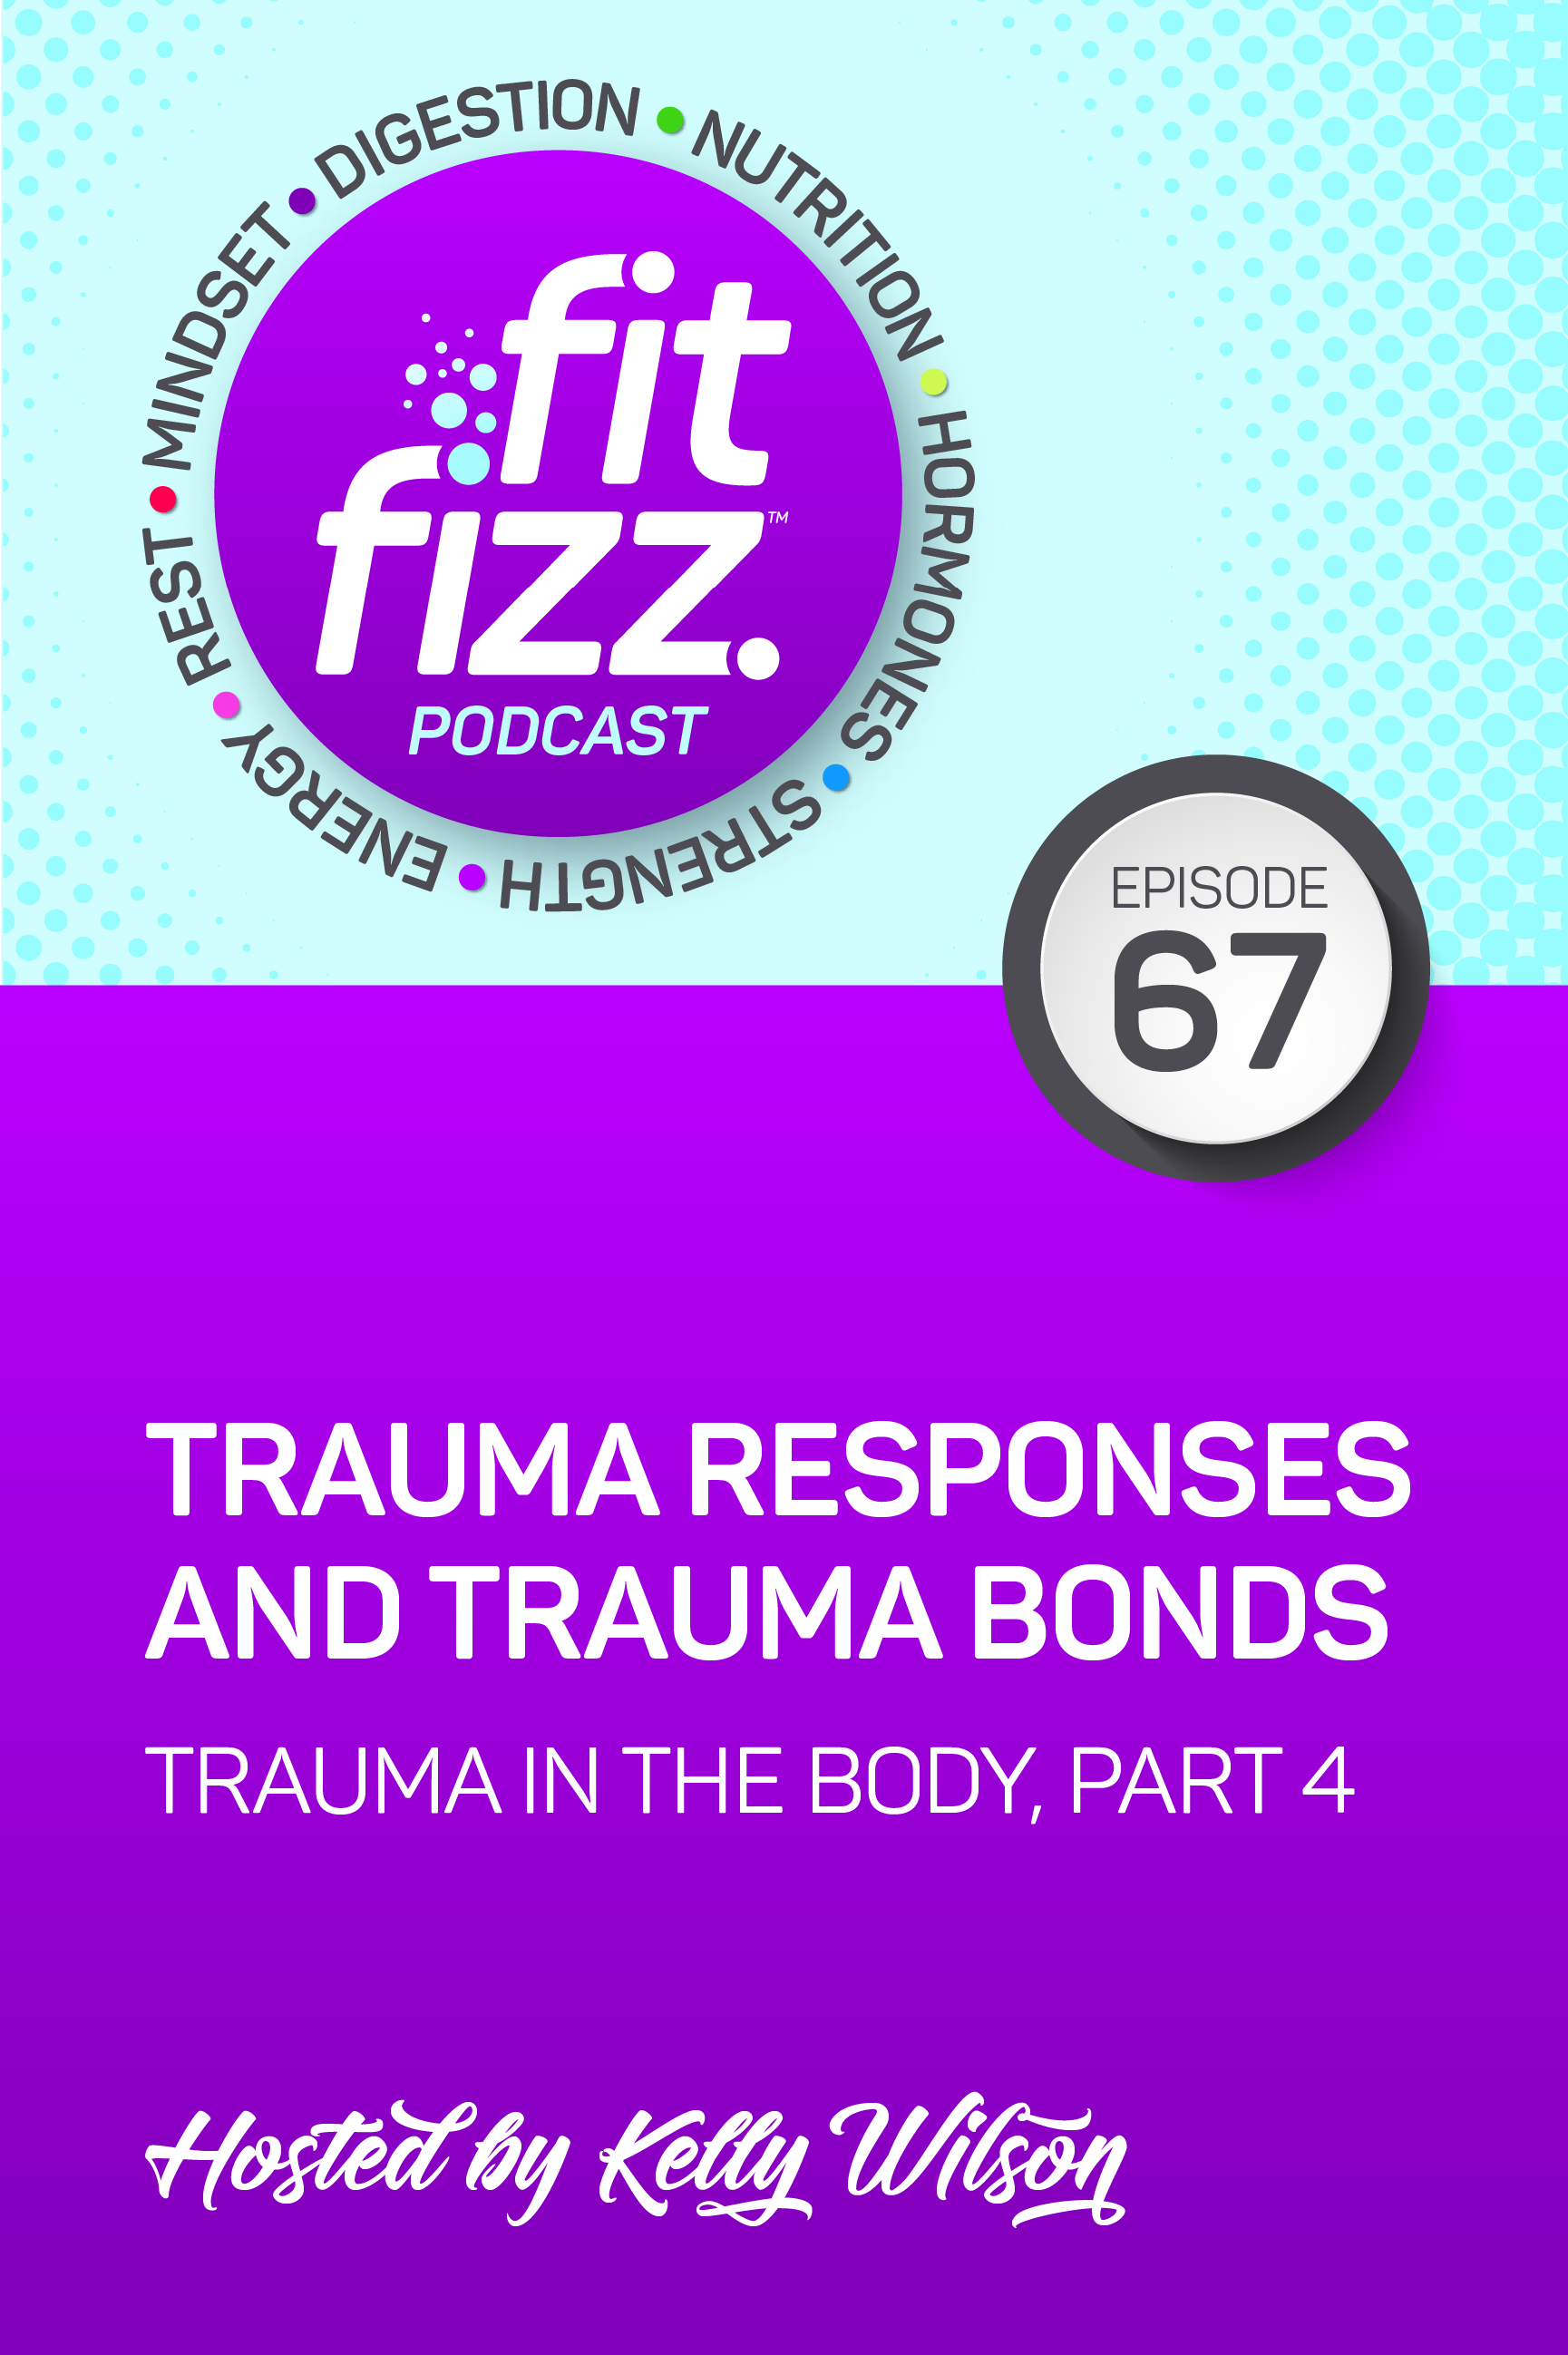 Ep. 67: Trauma Responses and Trauma Bonds (Trauma in the Body, Part 4)